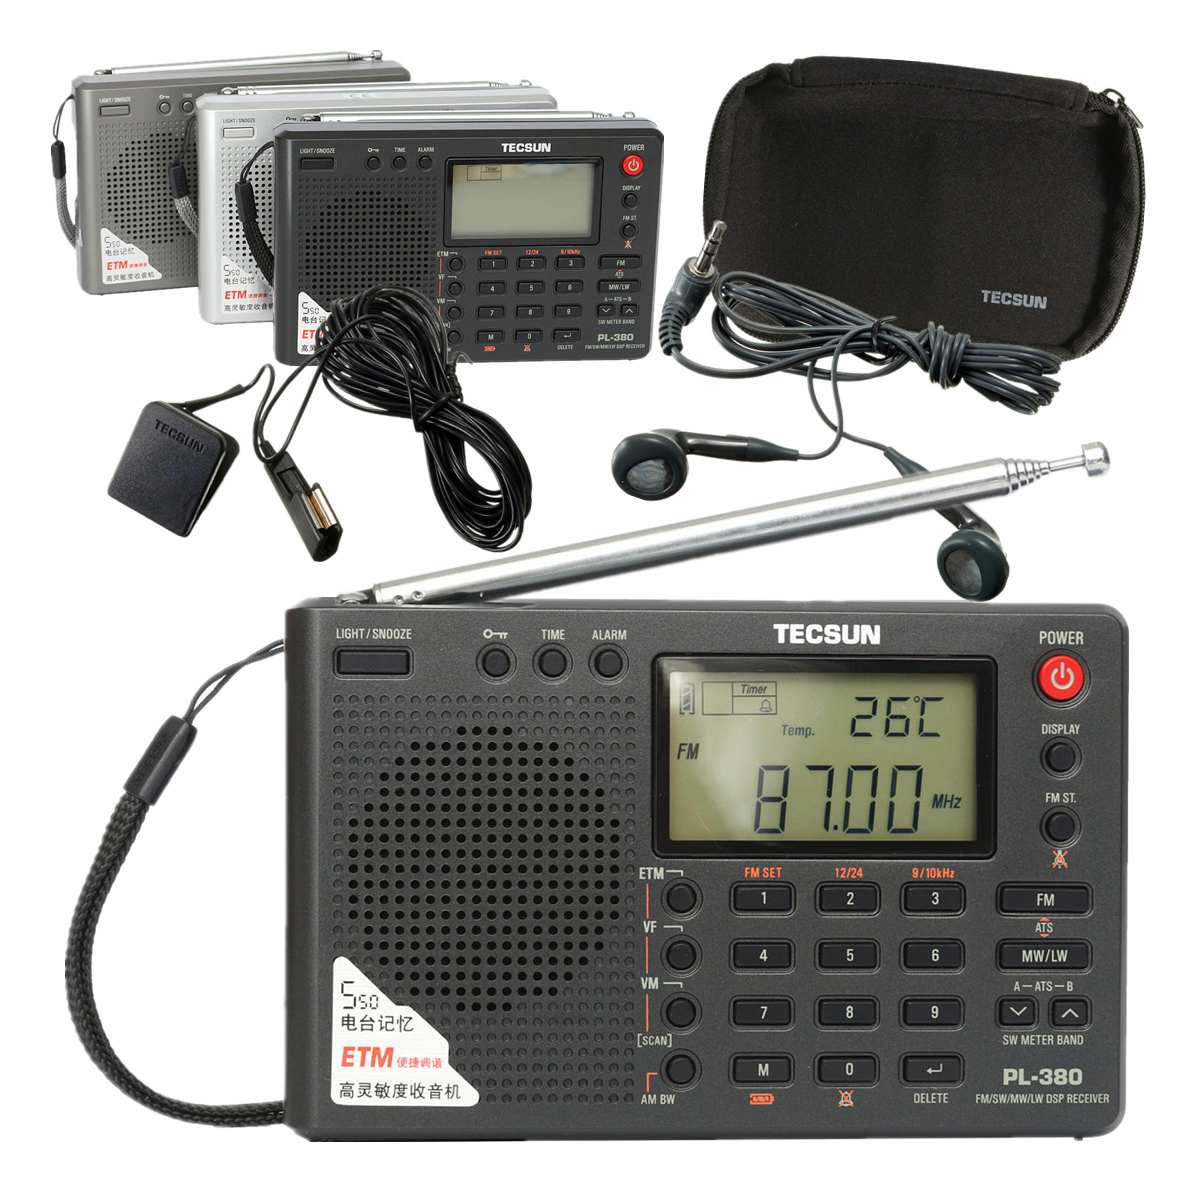 Silver Gray Black TECSUN PL-380 DSP PLL FM MW SW LW Digital Stereo Radio World-Band Receiver New 7 Tuning Mode Selectable tecsun pl 310 fm am sw lw dsp world band radio pl310